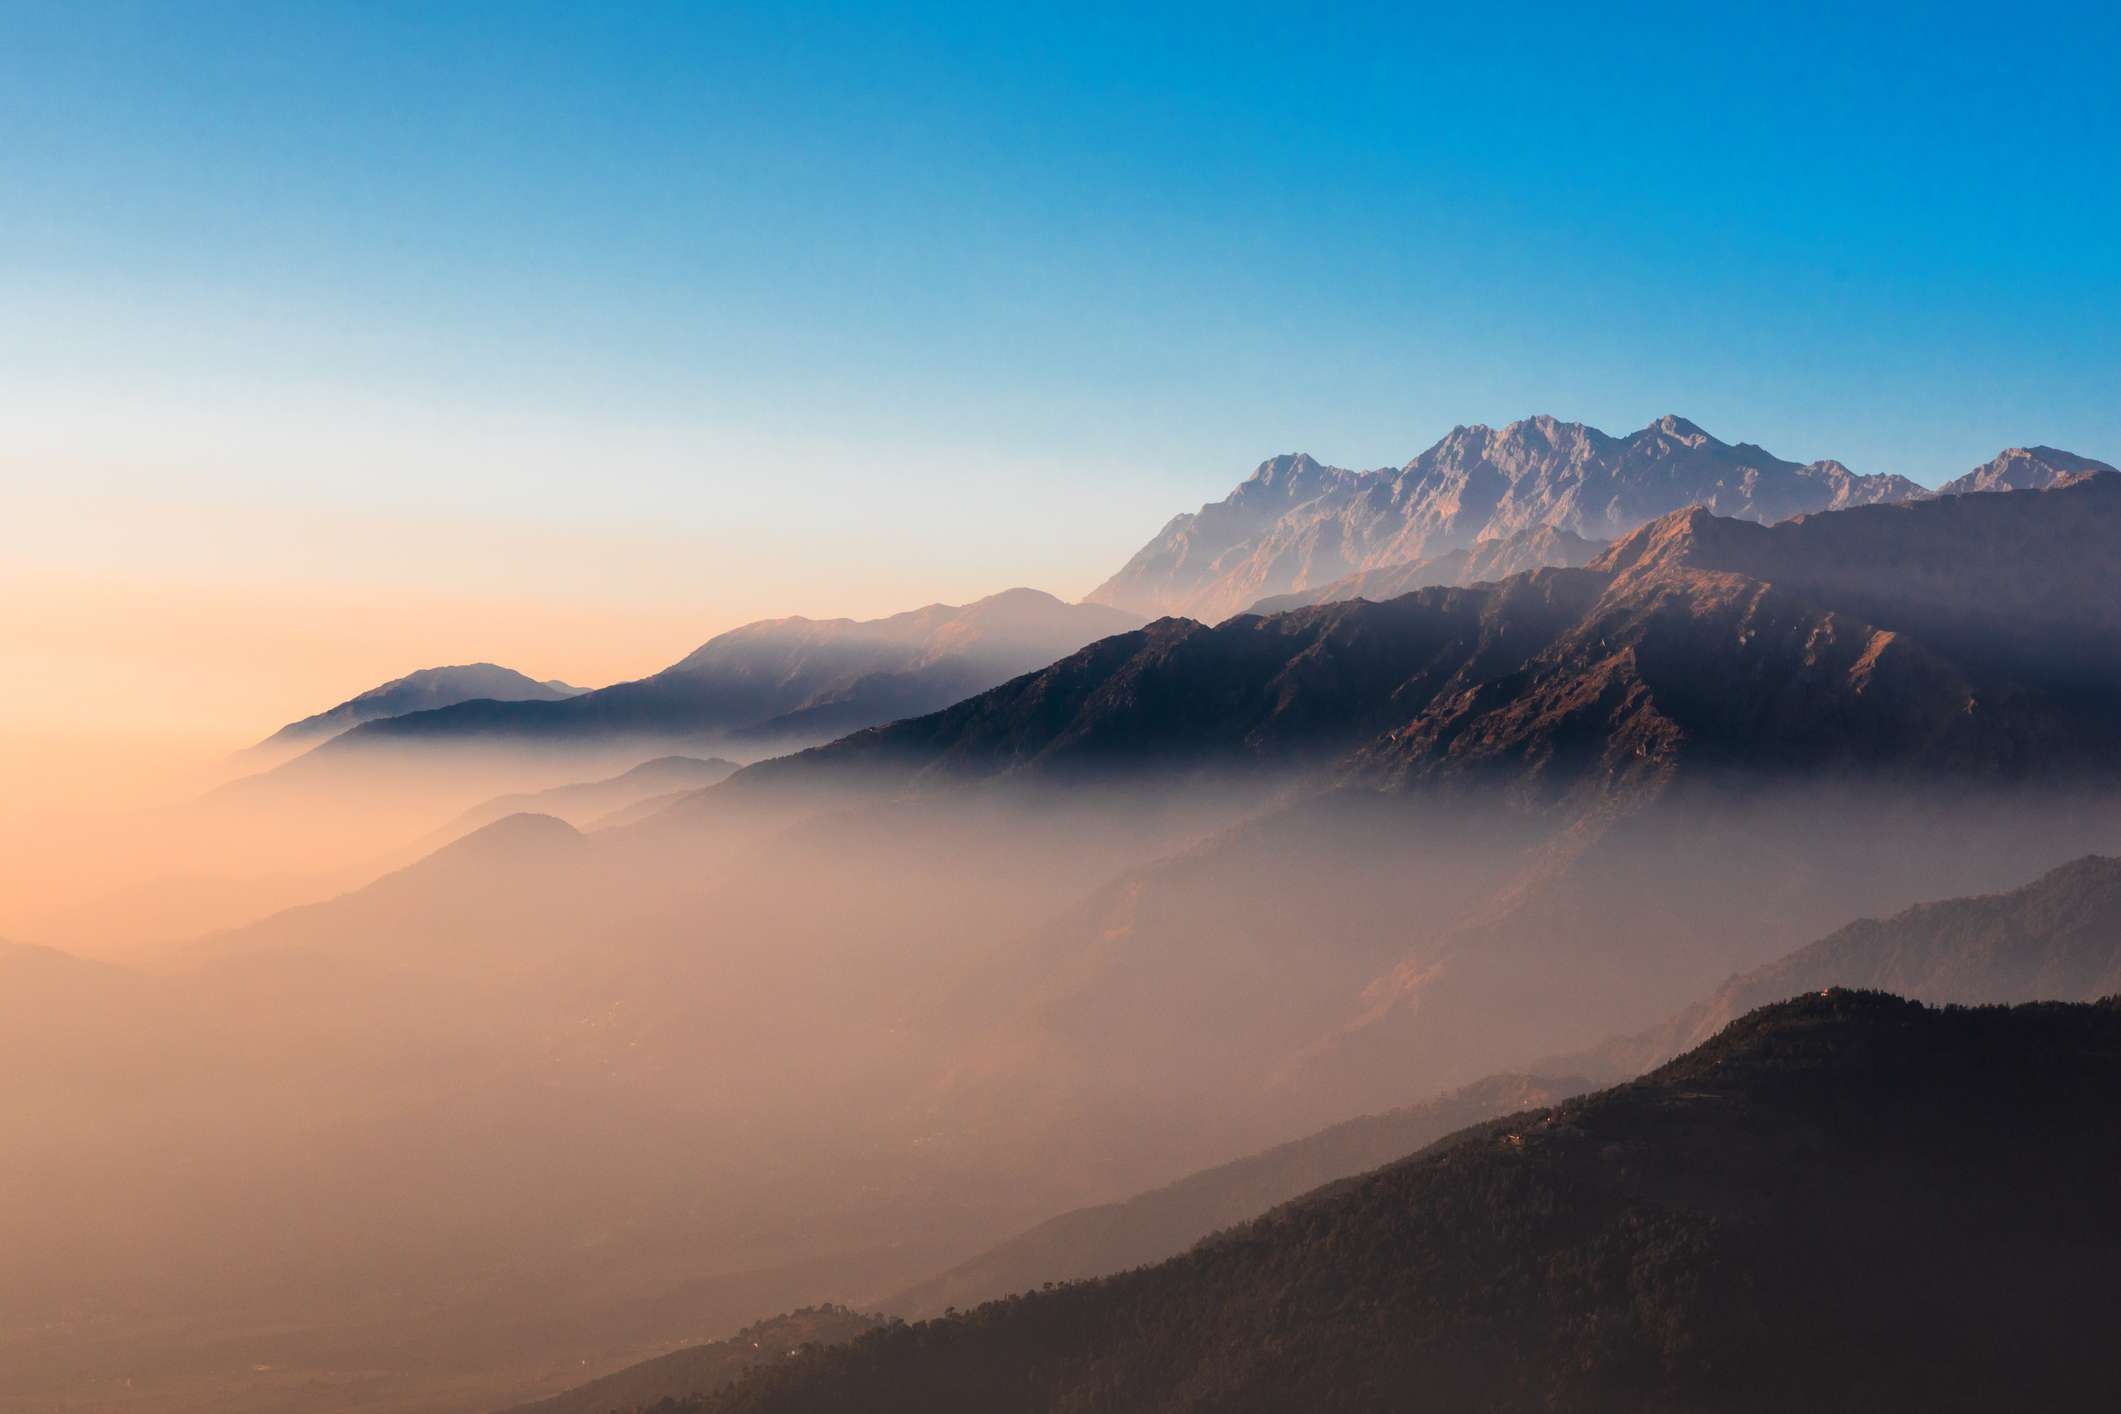 layered mountains with mist at sunrise